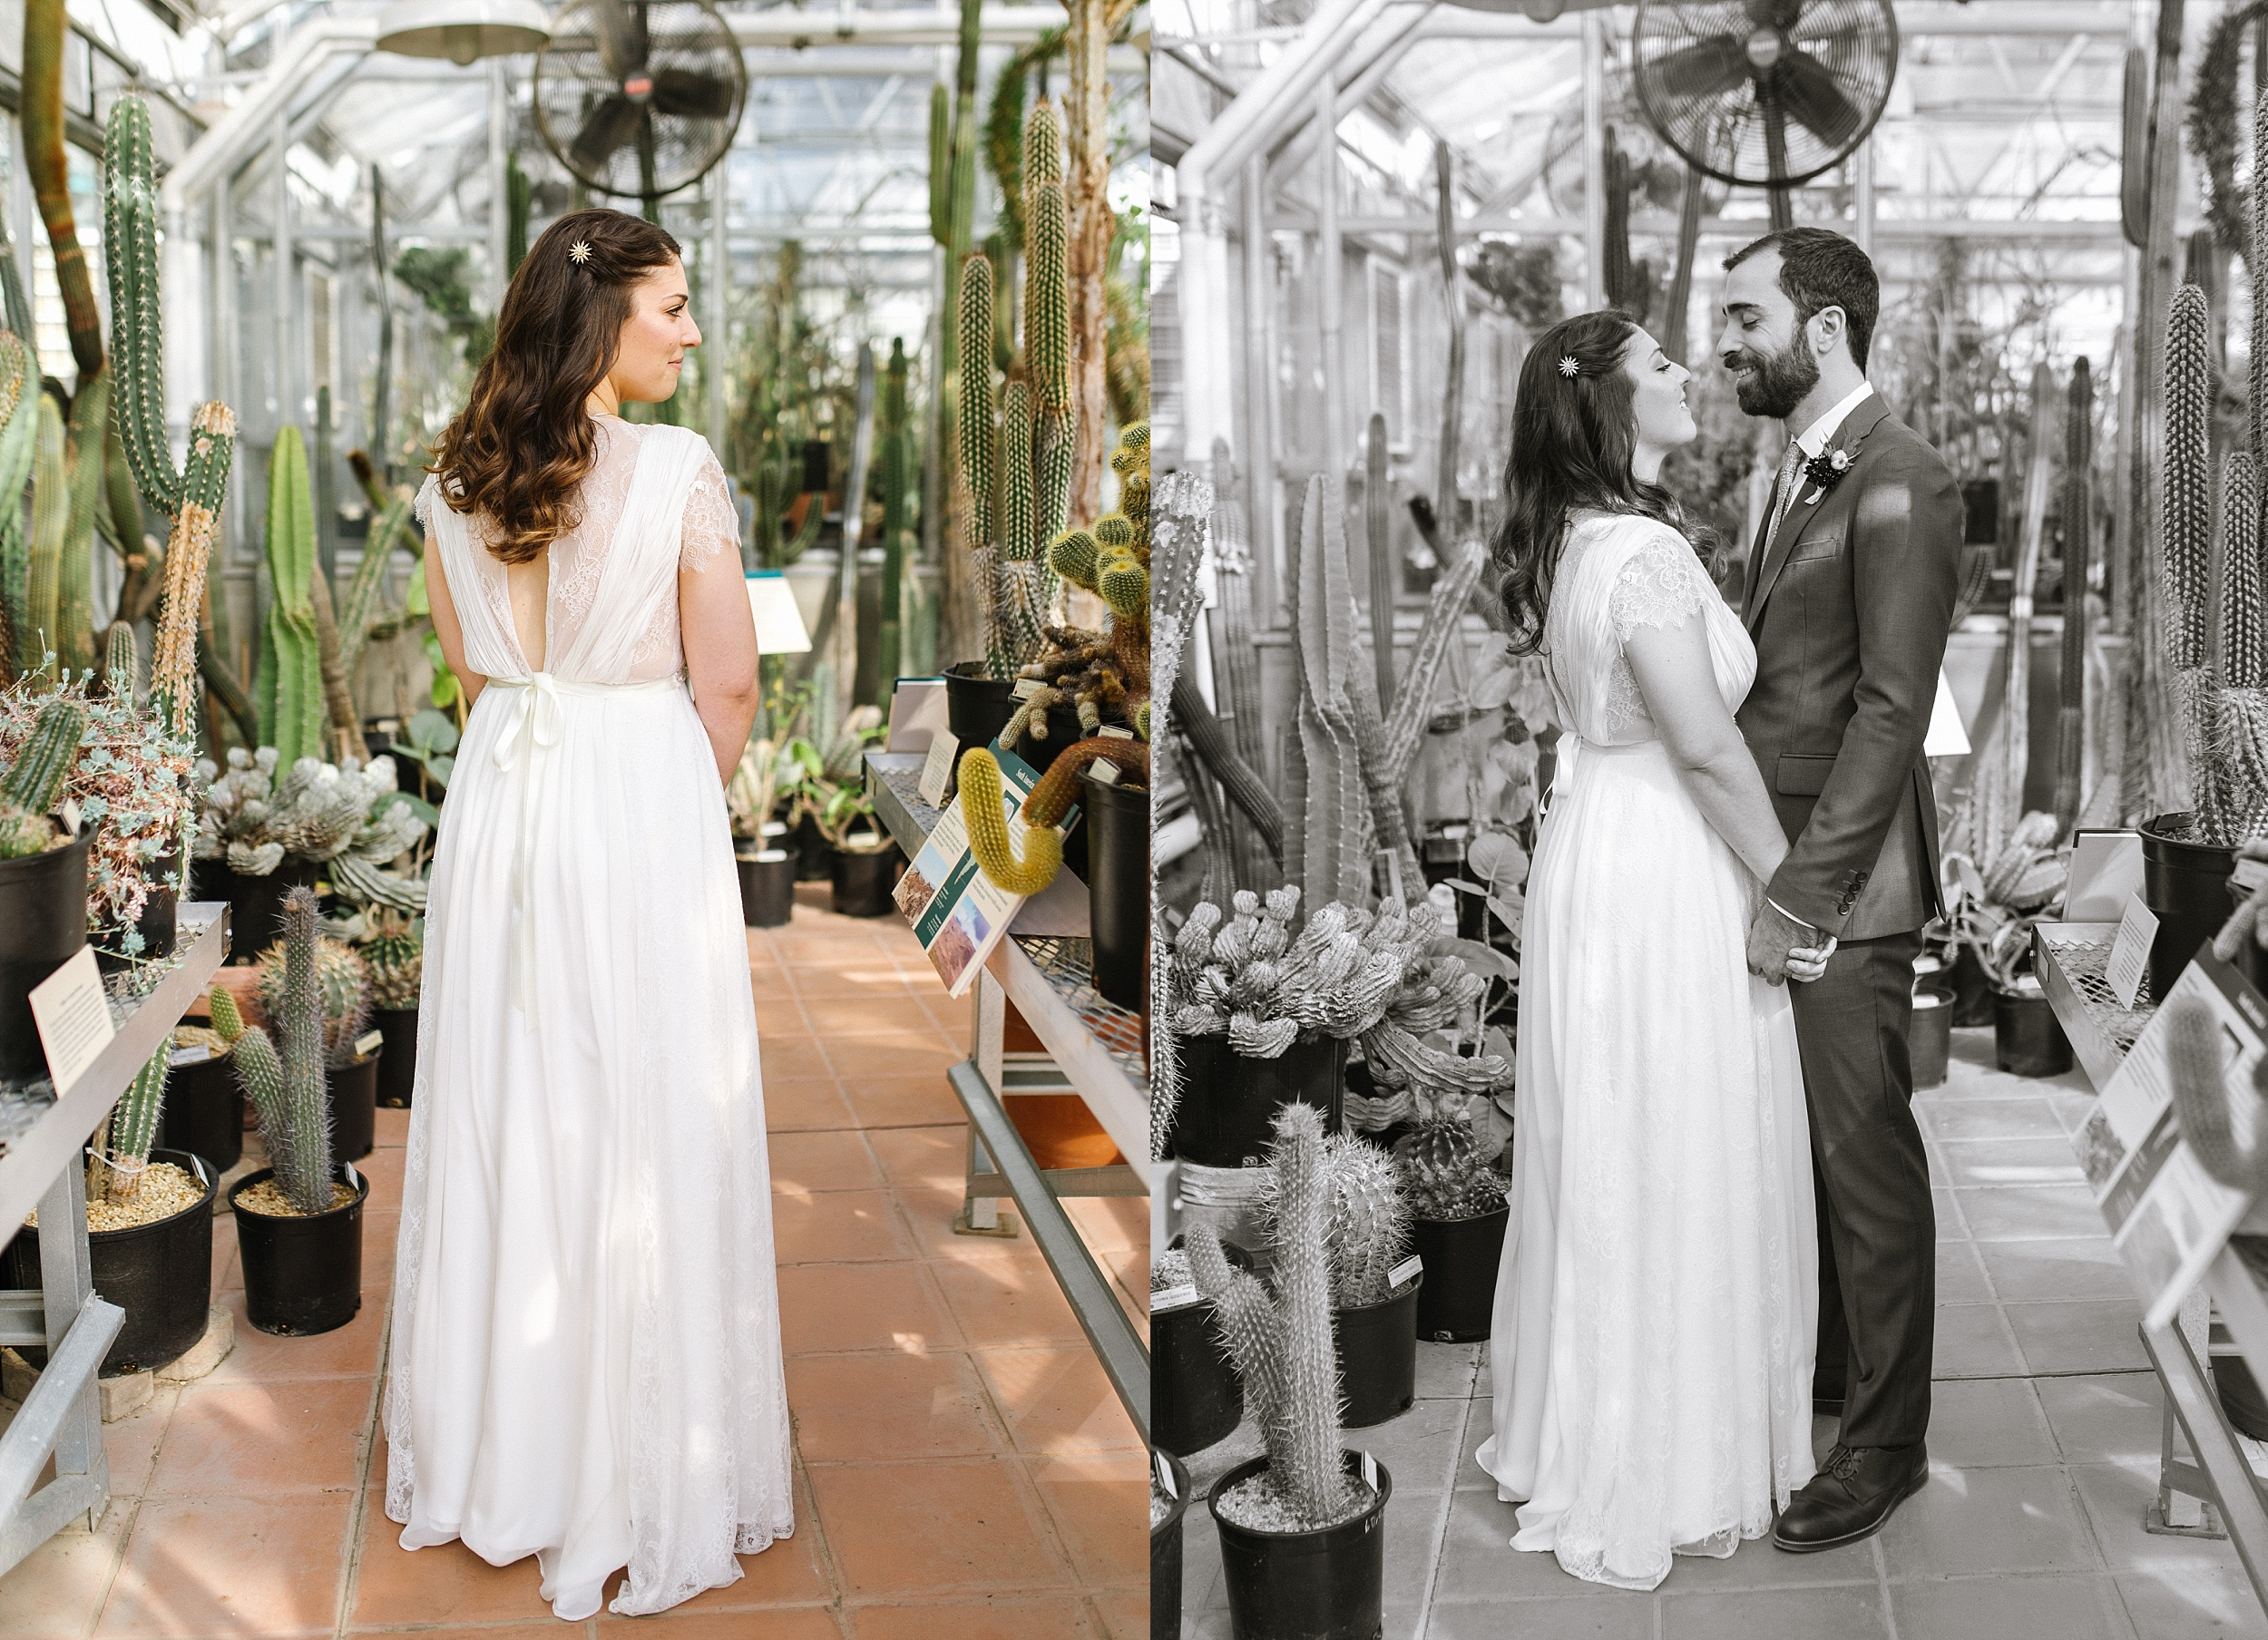 noahhannah_redwoods_botanical_wedding_berkeley_cdp_0013.jpg